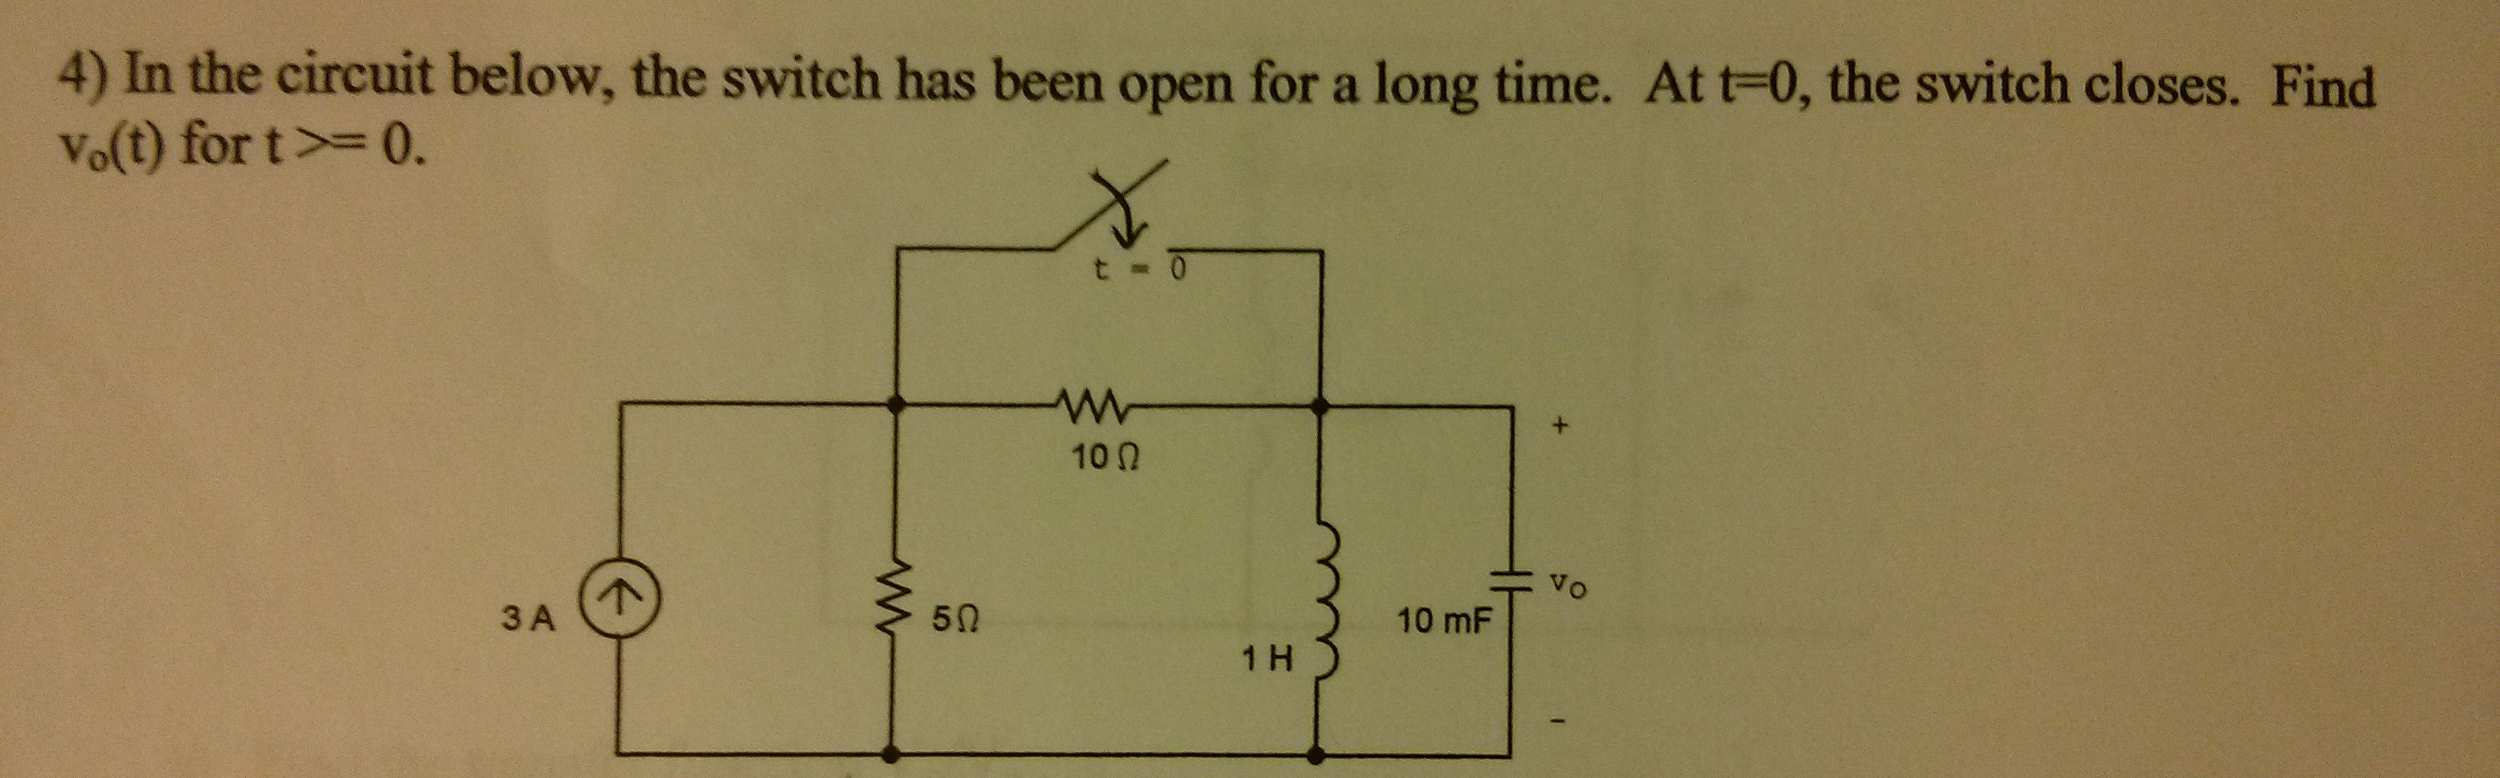 In the circuit below, the switch has been open for